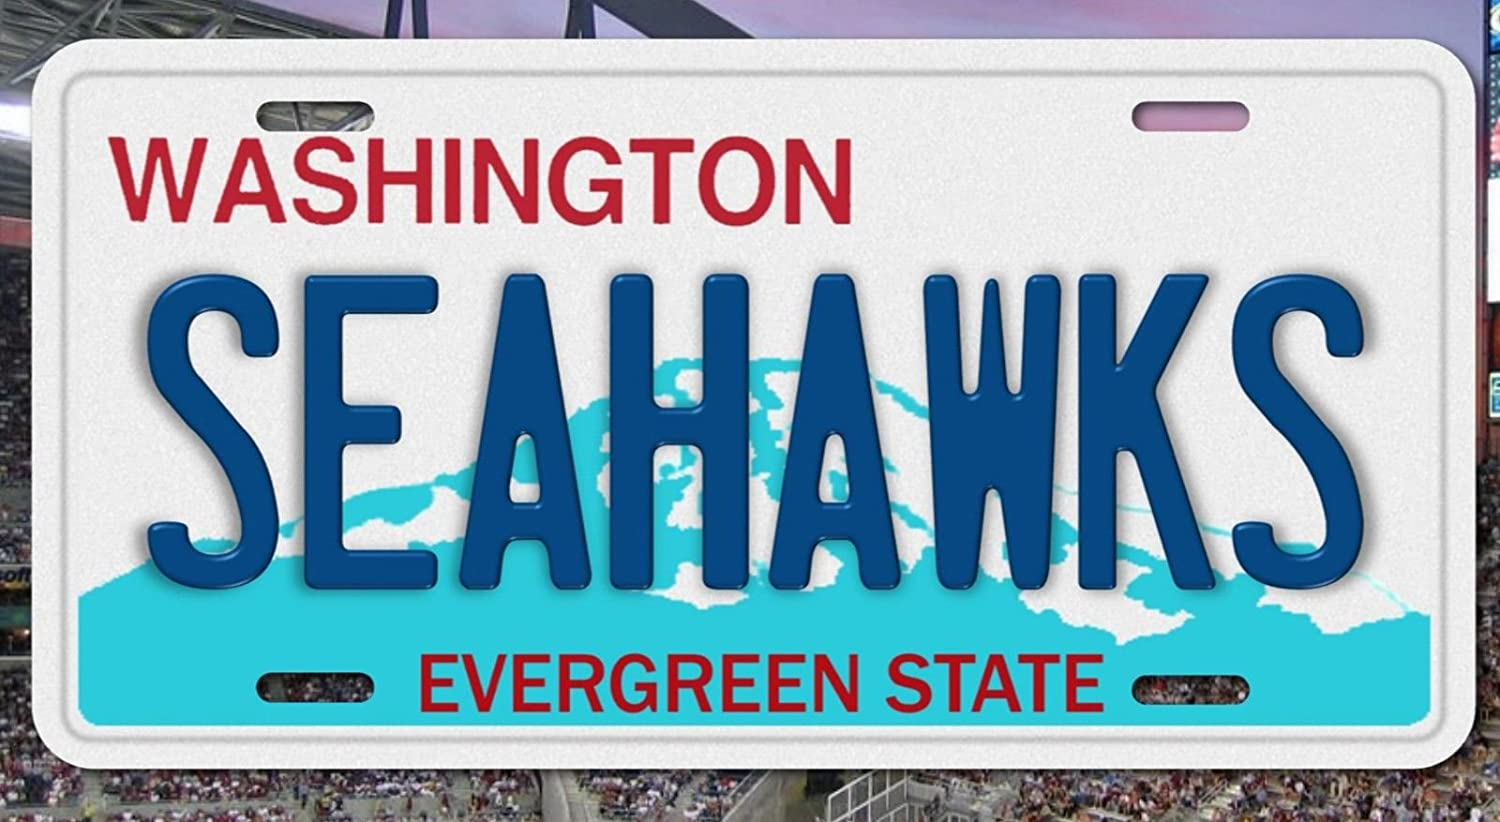 This Girl Loves Her Seahawks Novelty Metal License Plate